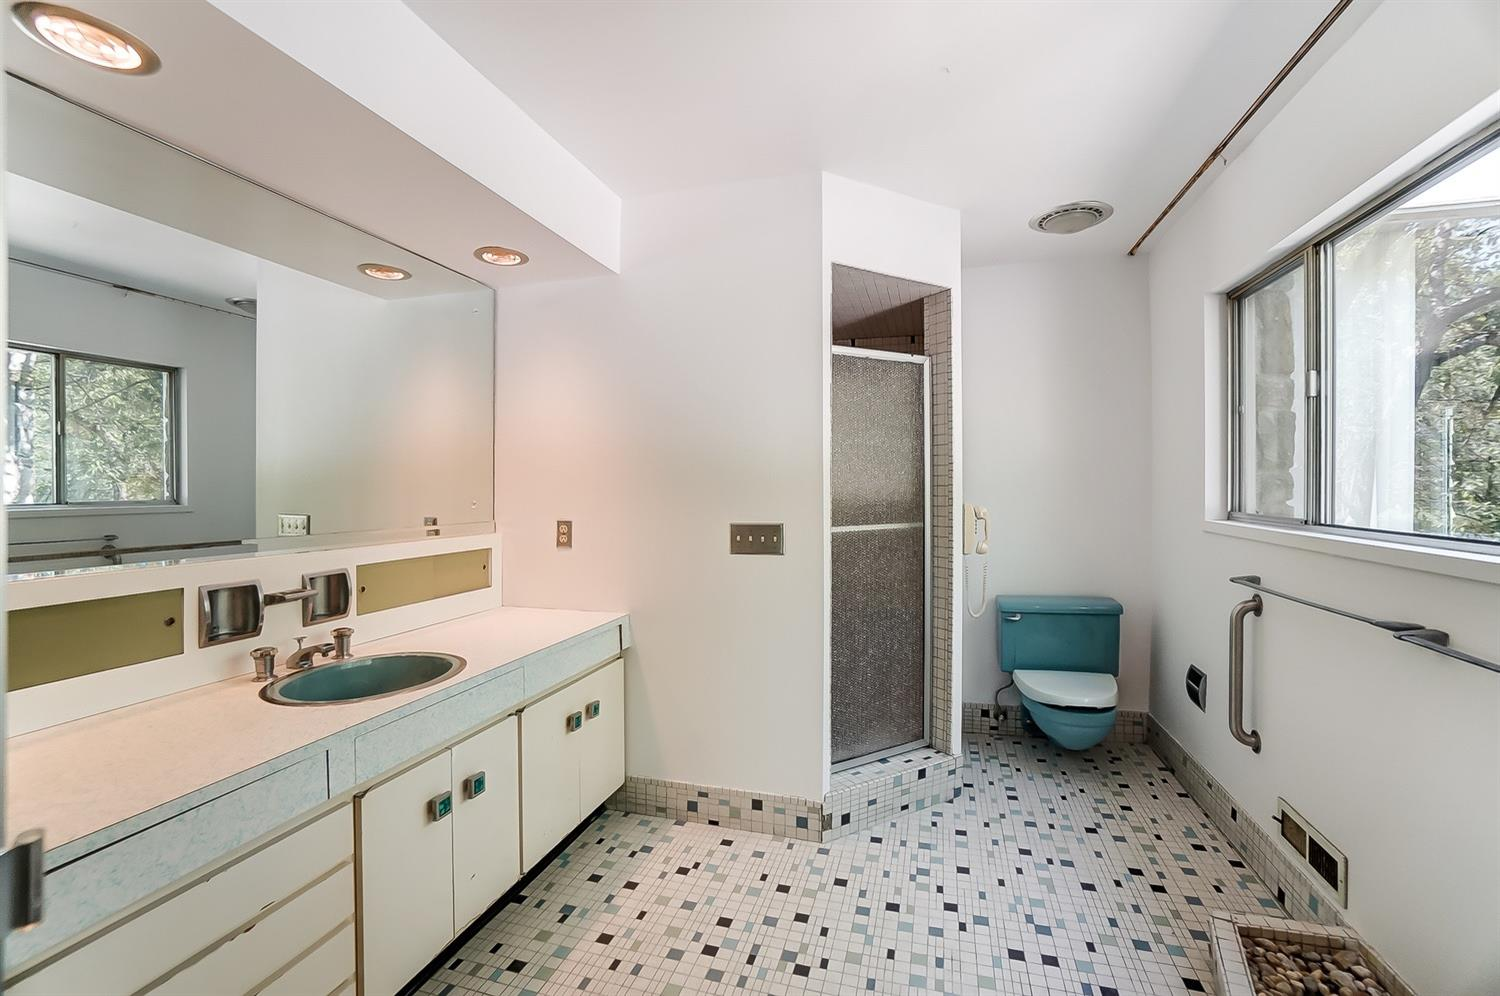 All original blue and green primary bath with mosaic tile, large custom vanity with storage niches and delightful original hardware including the resin door knobs. In the lower right corner of the photo is a peek of the indoor planter beneath the wide picture window. A surprise awaits behind the shower door!